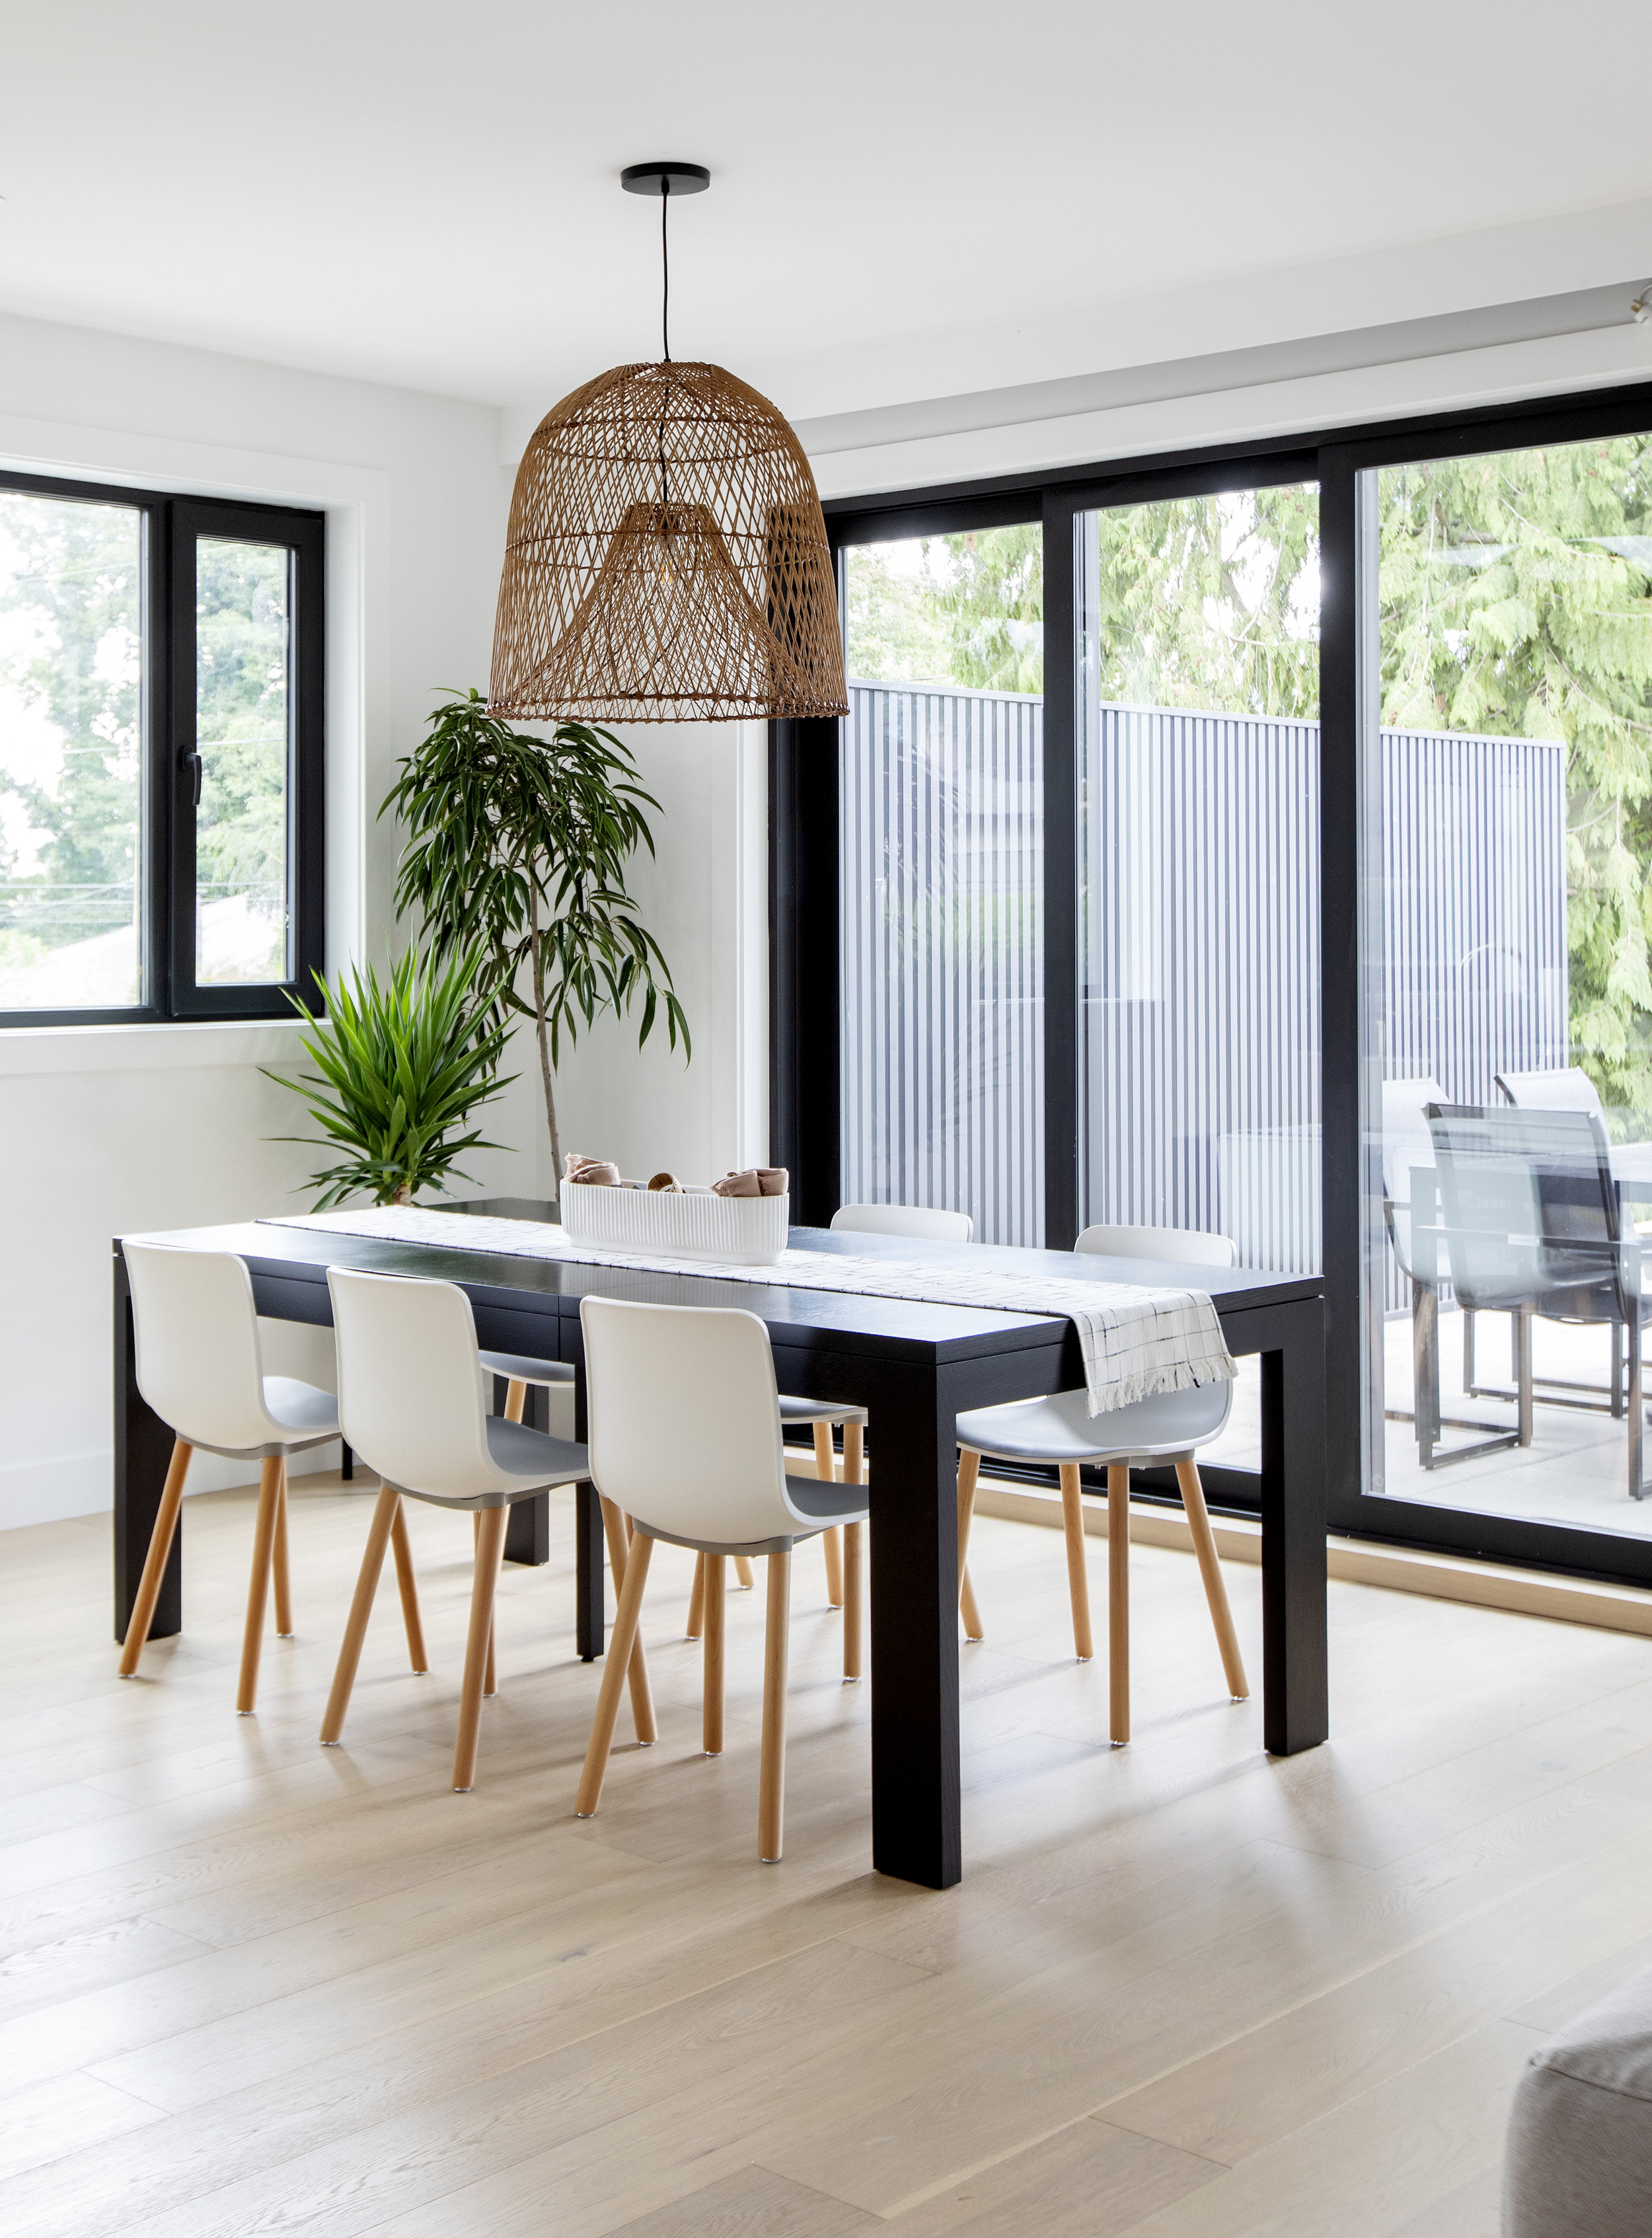 The family dining room has a large black dining table surrounded by white chairs, with a wicker light fixture positioned above.